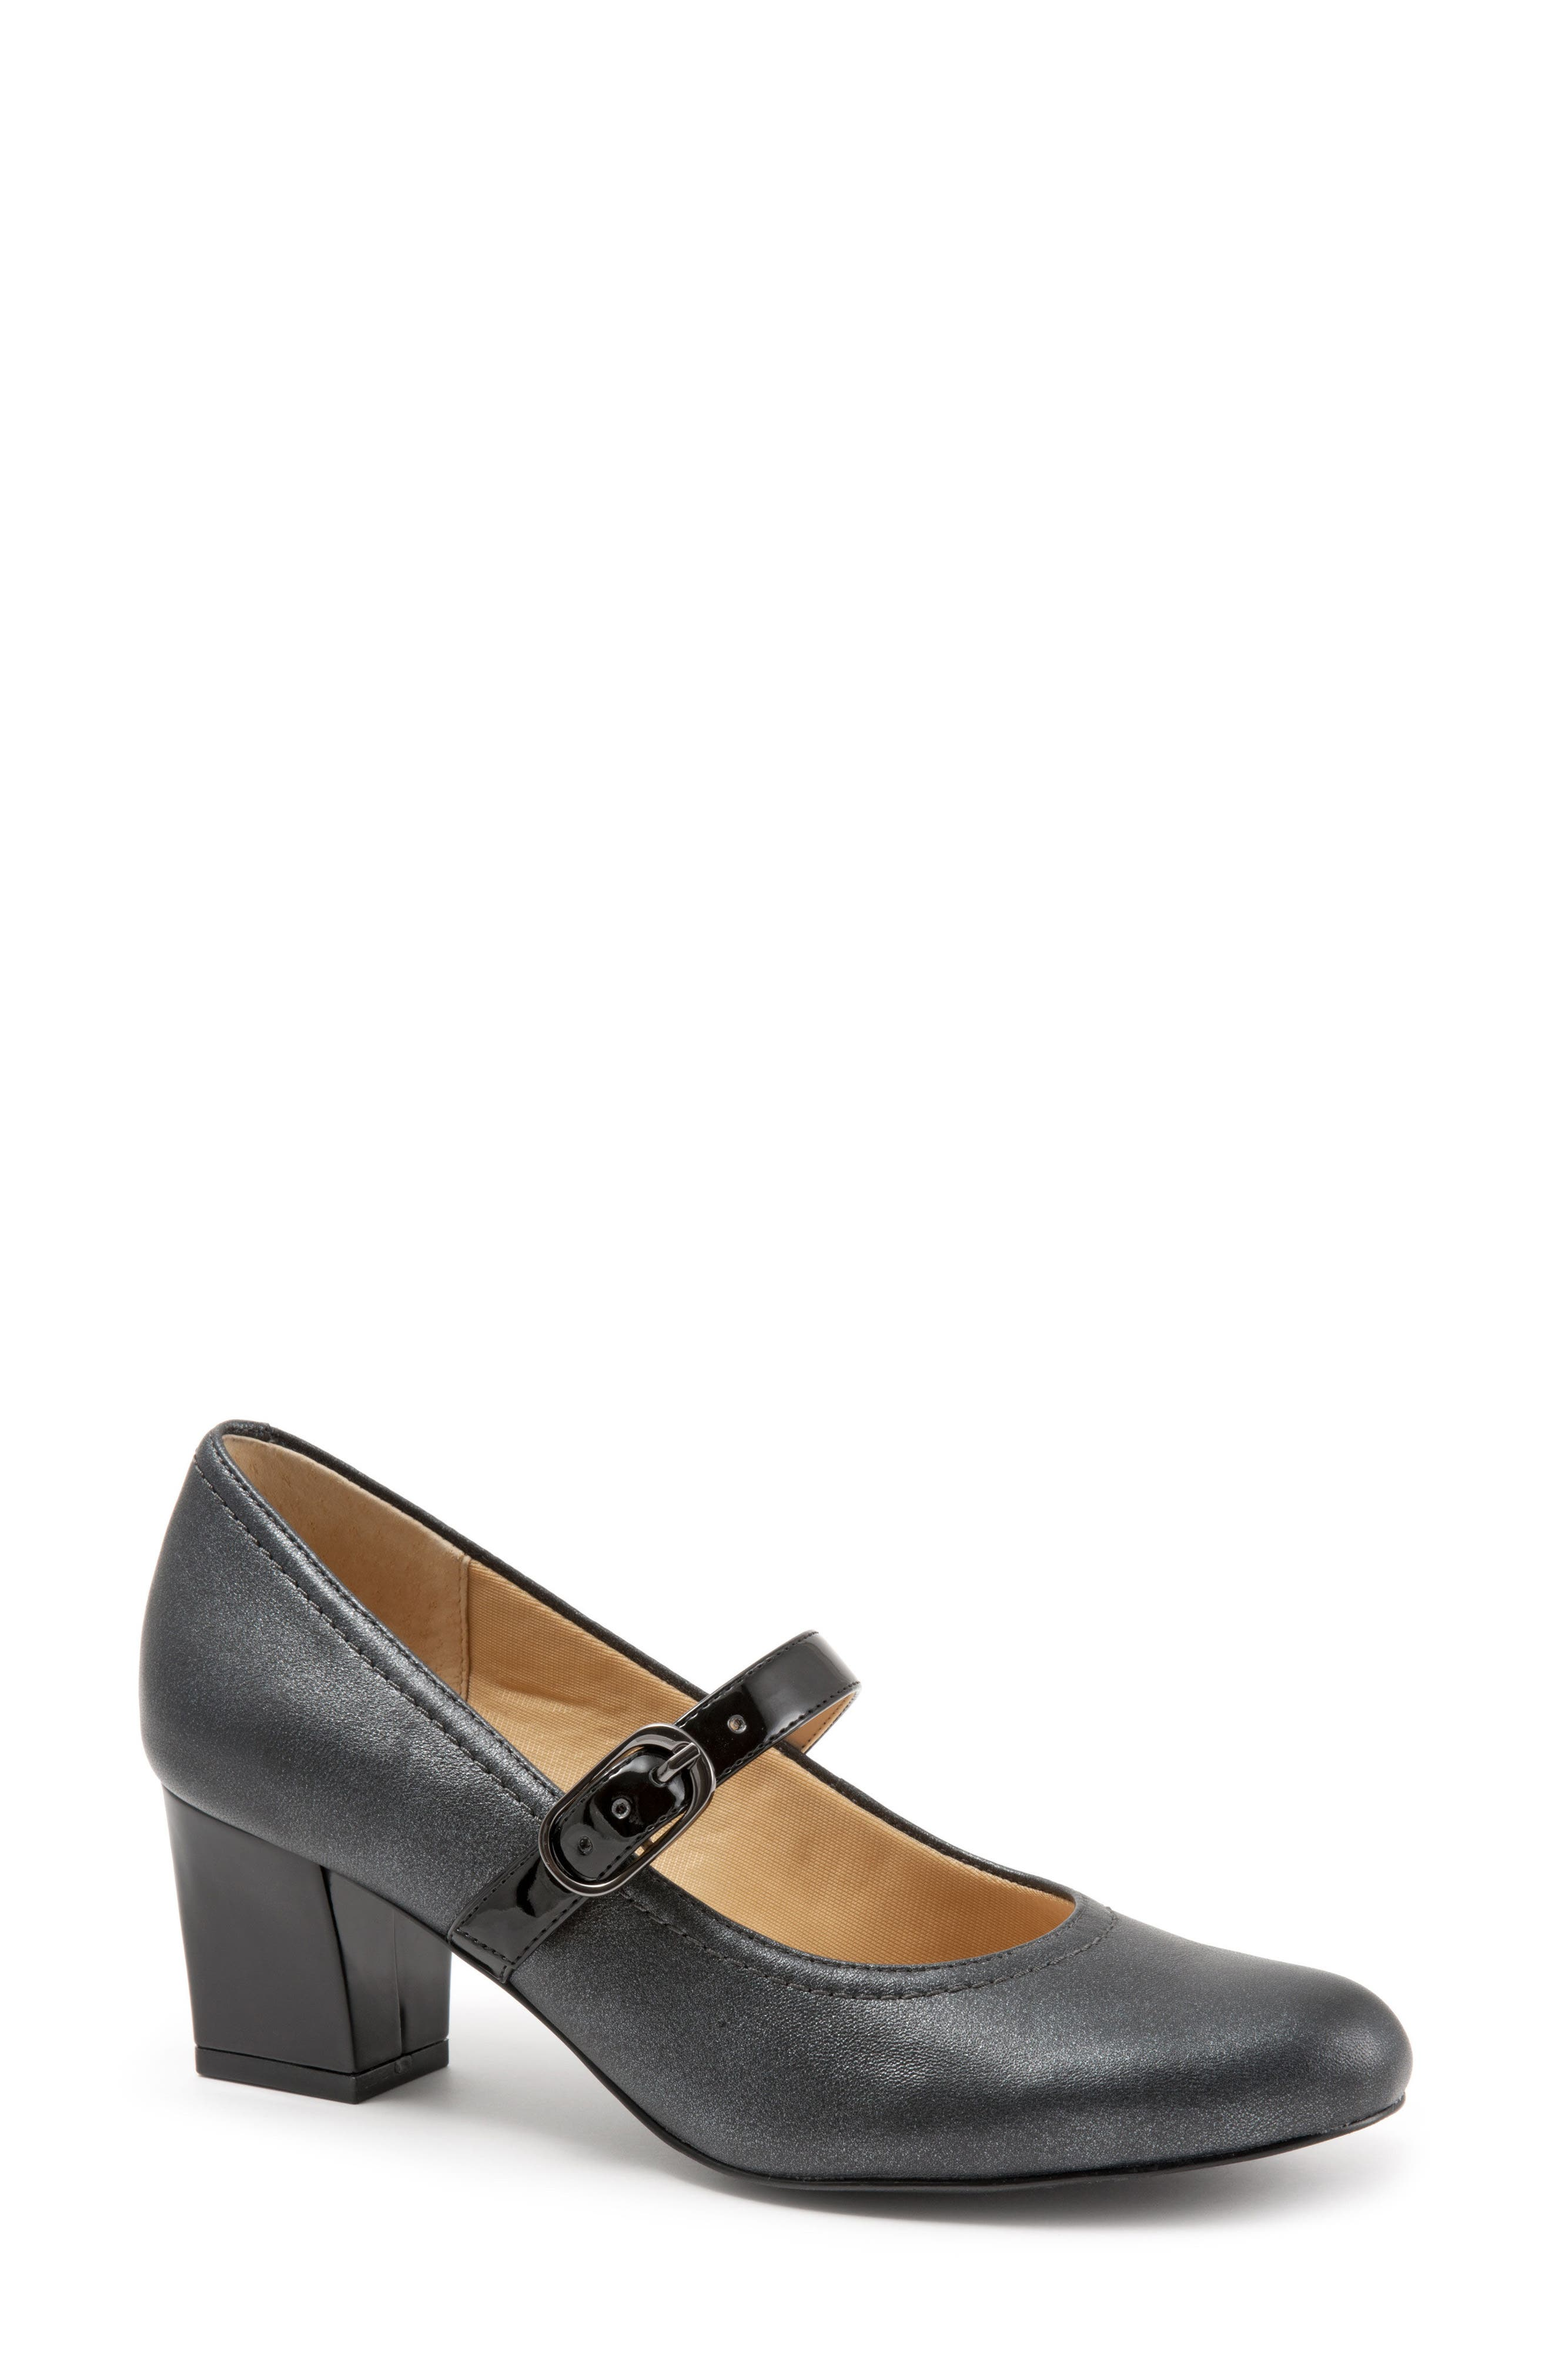 TROTTERS Candice Mary Jane Pump